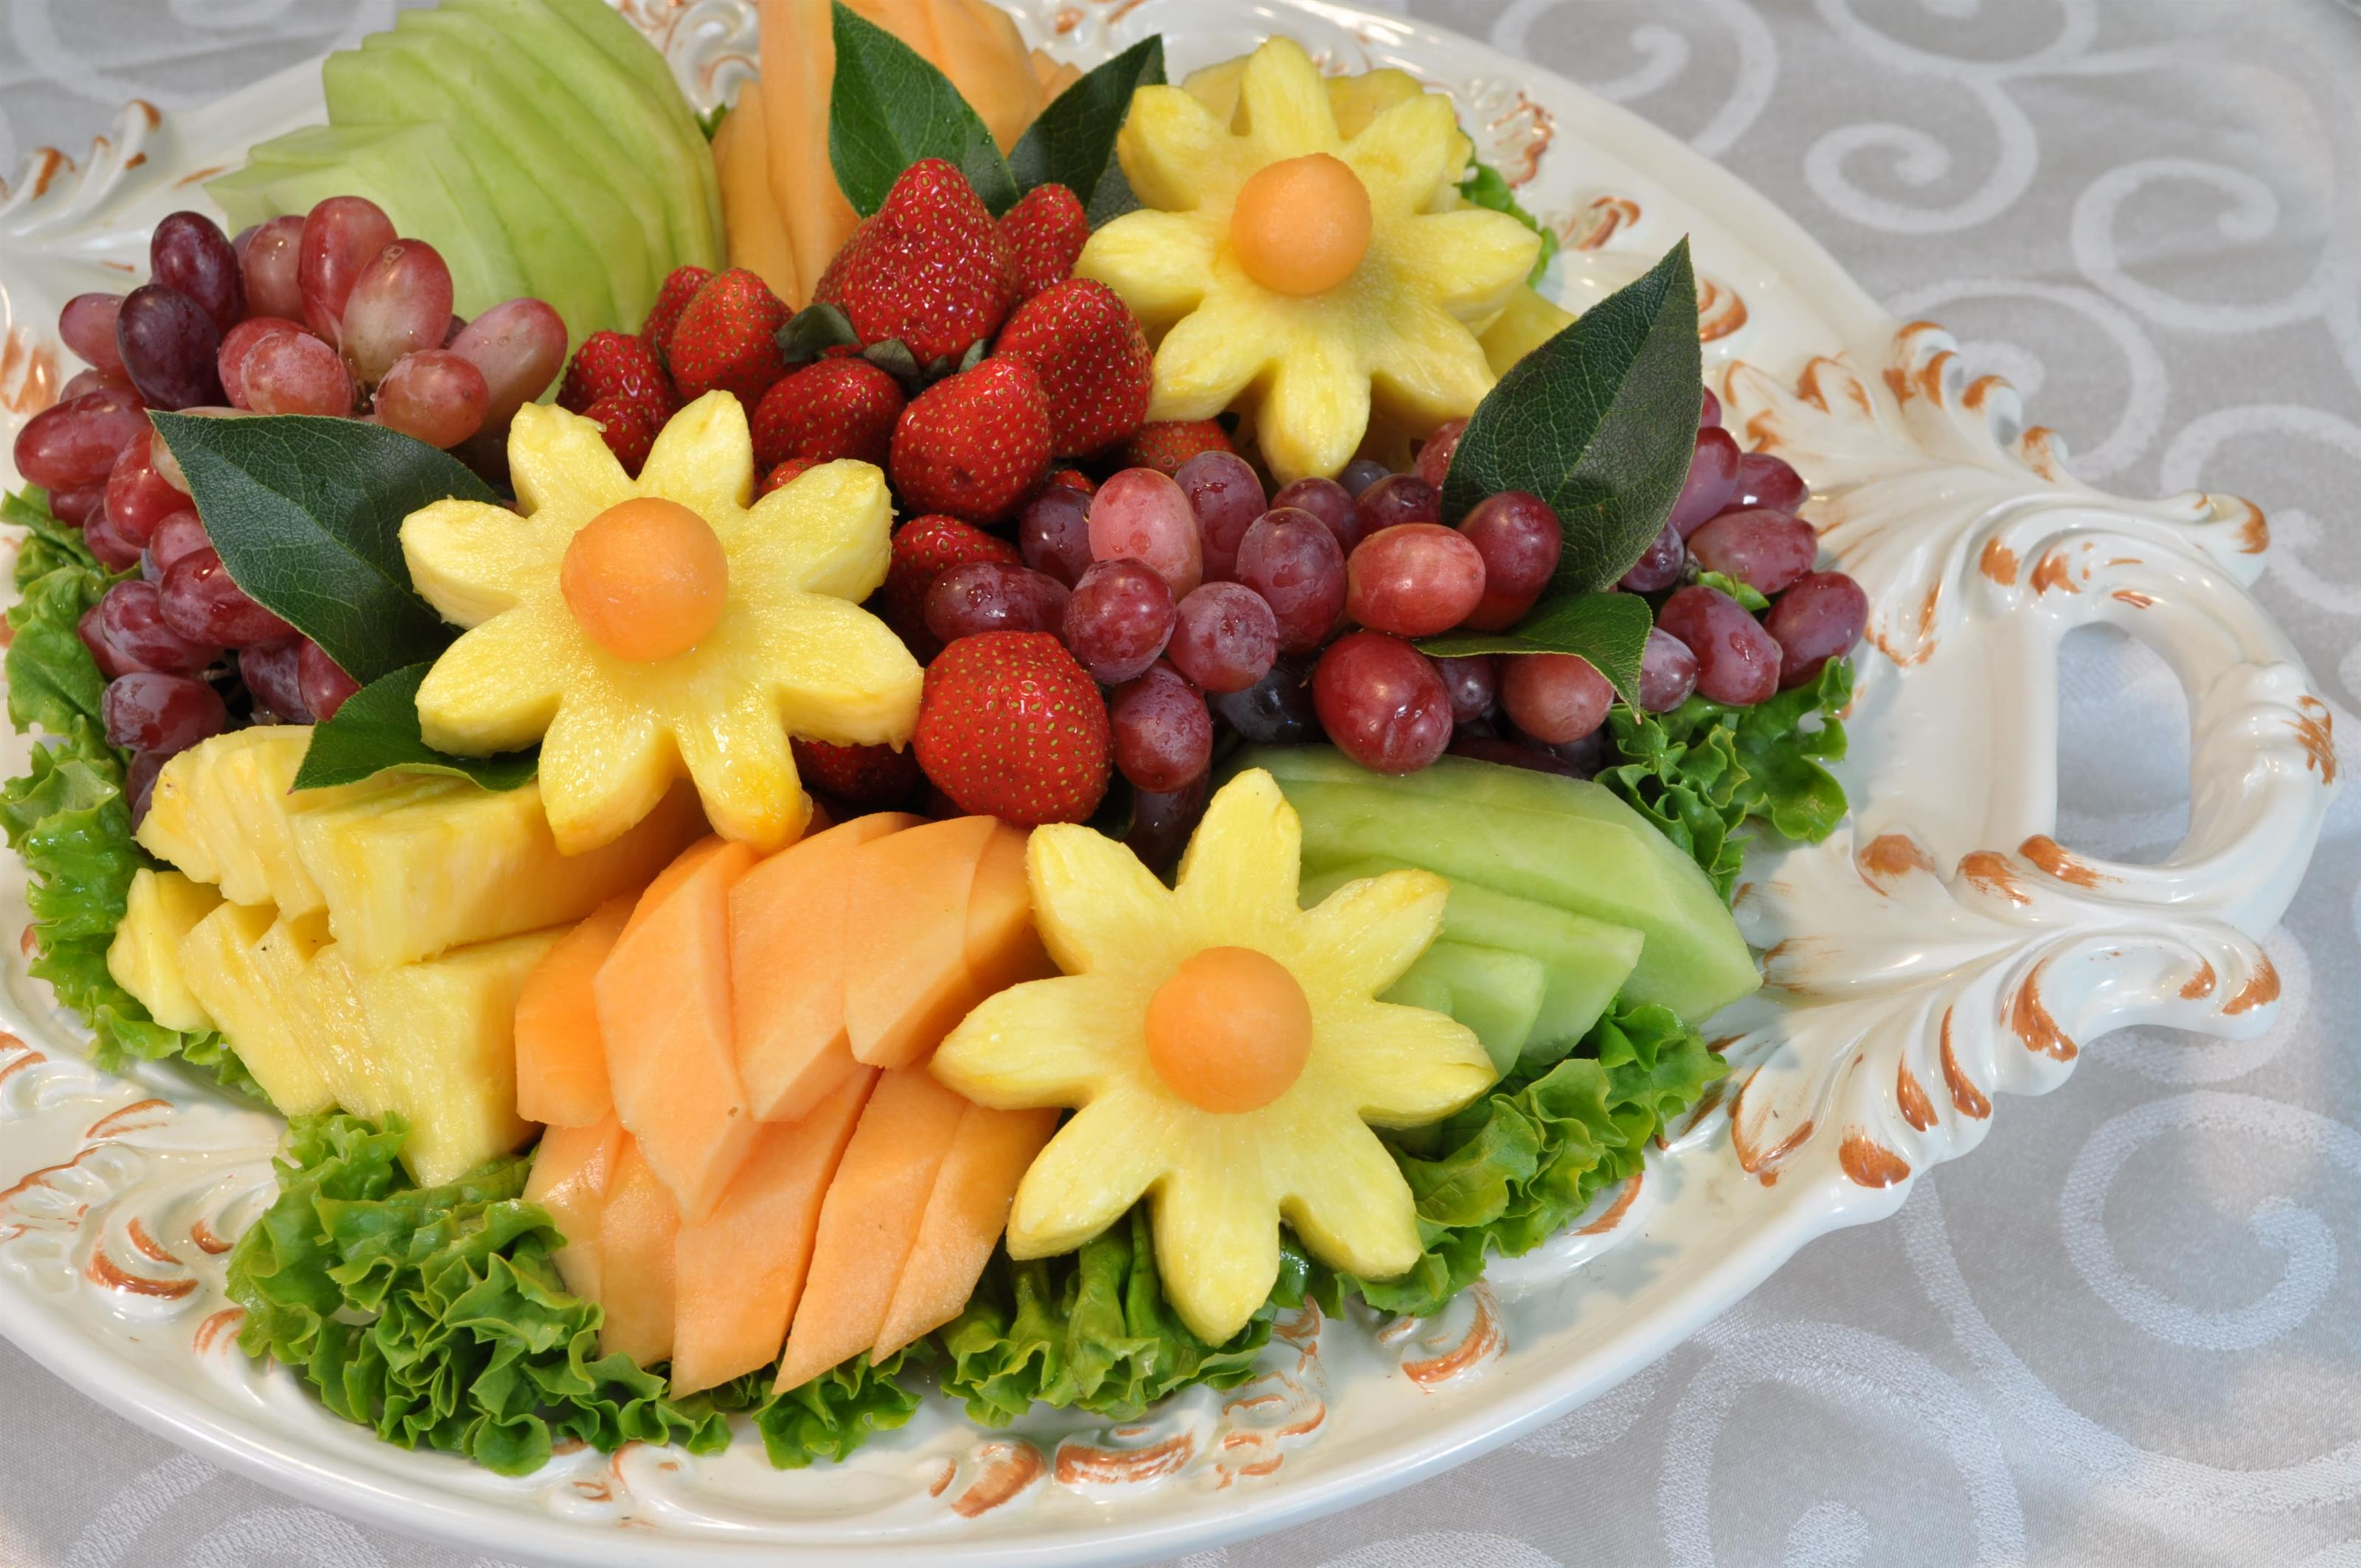 assorted fruit platter with some shaped like flowers